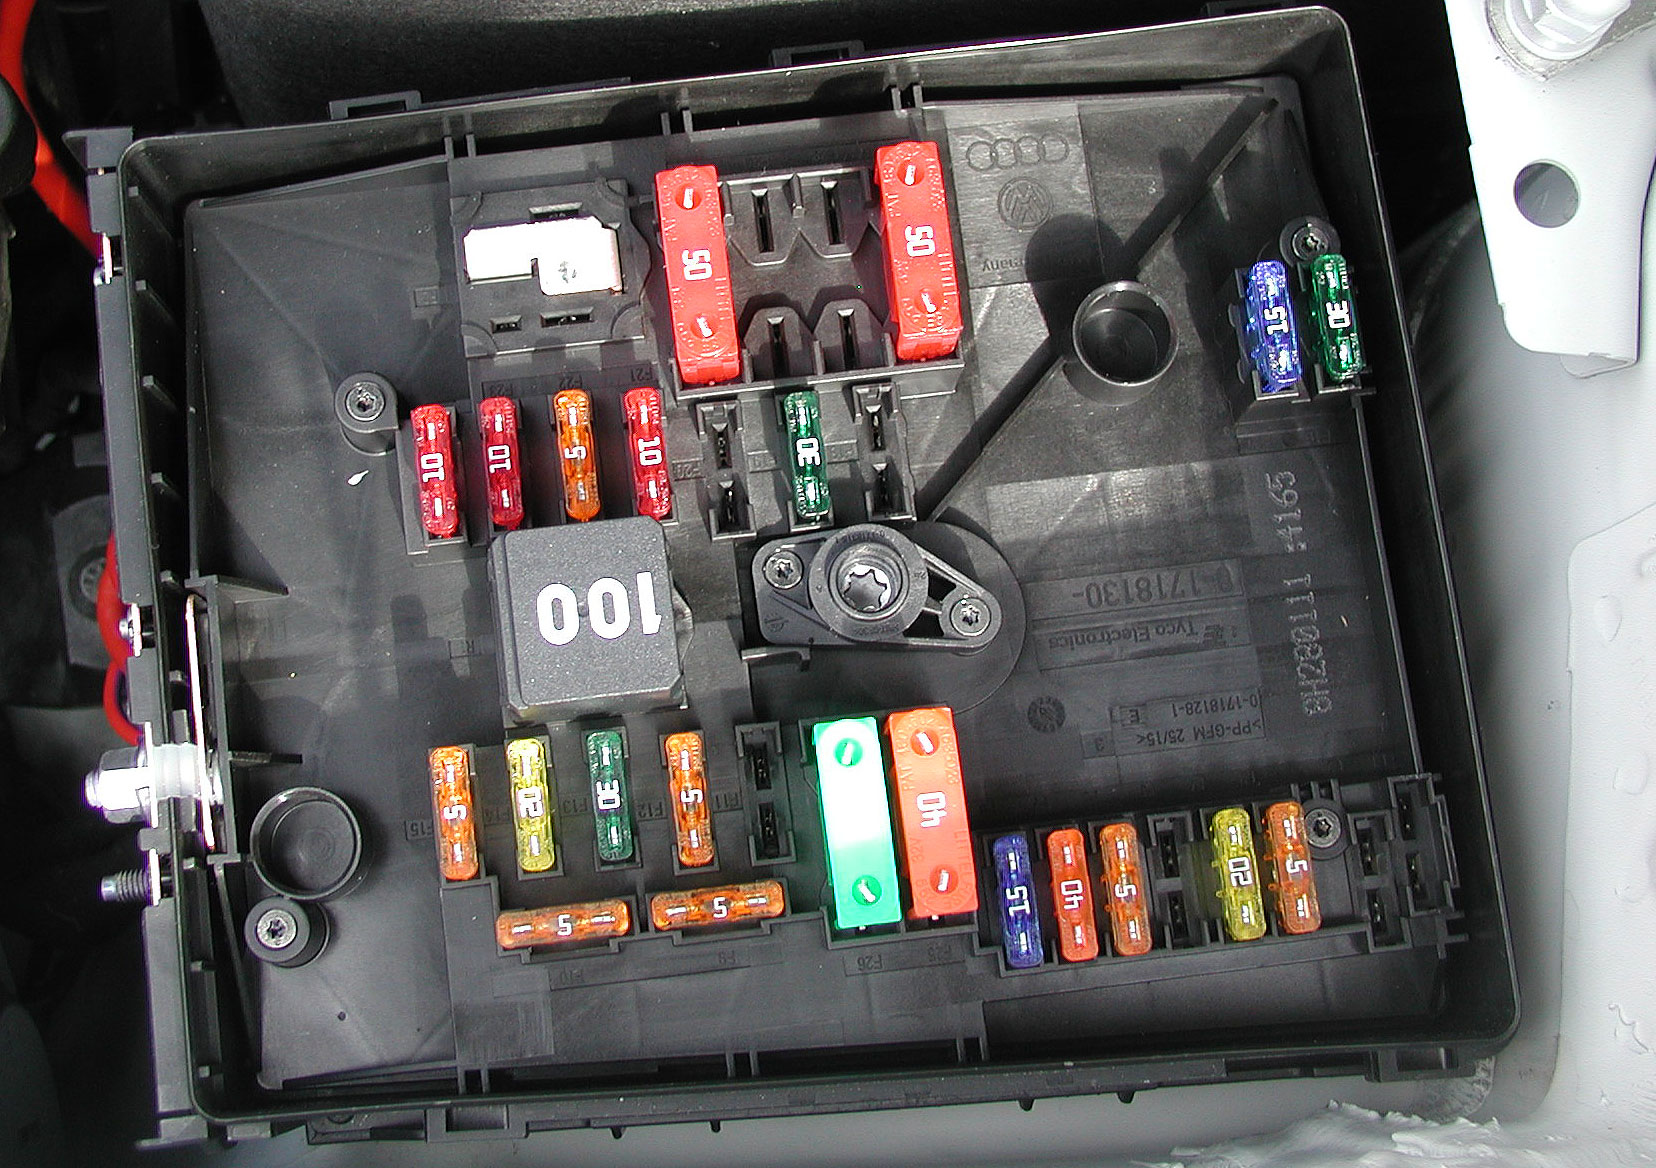 2011 Golf Tdi Fuse Box (picture Please!!!) Tdiclub Forums Motorcycle Fuse  Box 2011 Volkswagen Golf Fuse Box